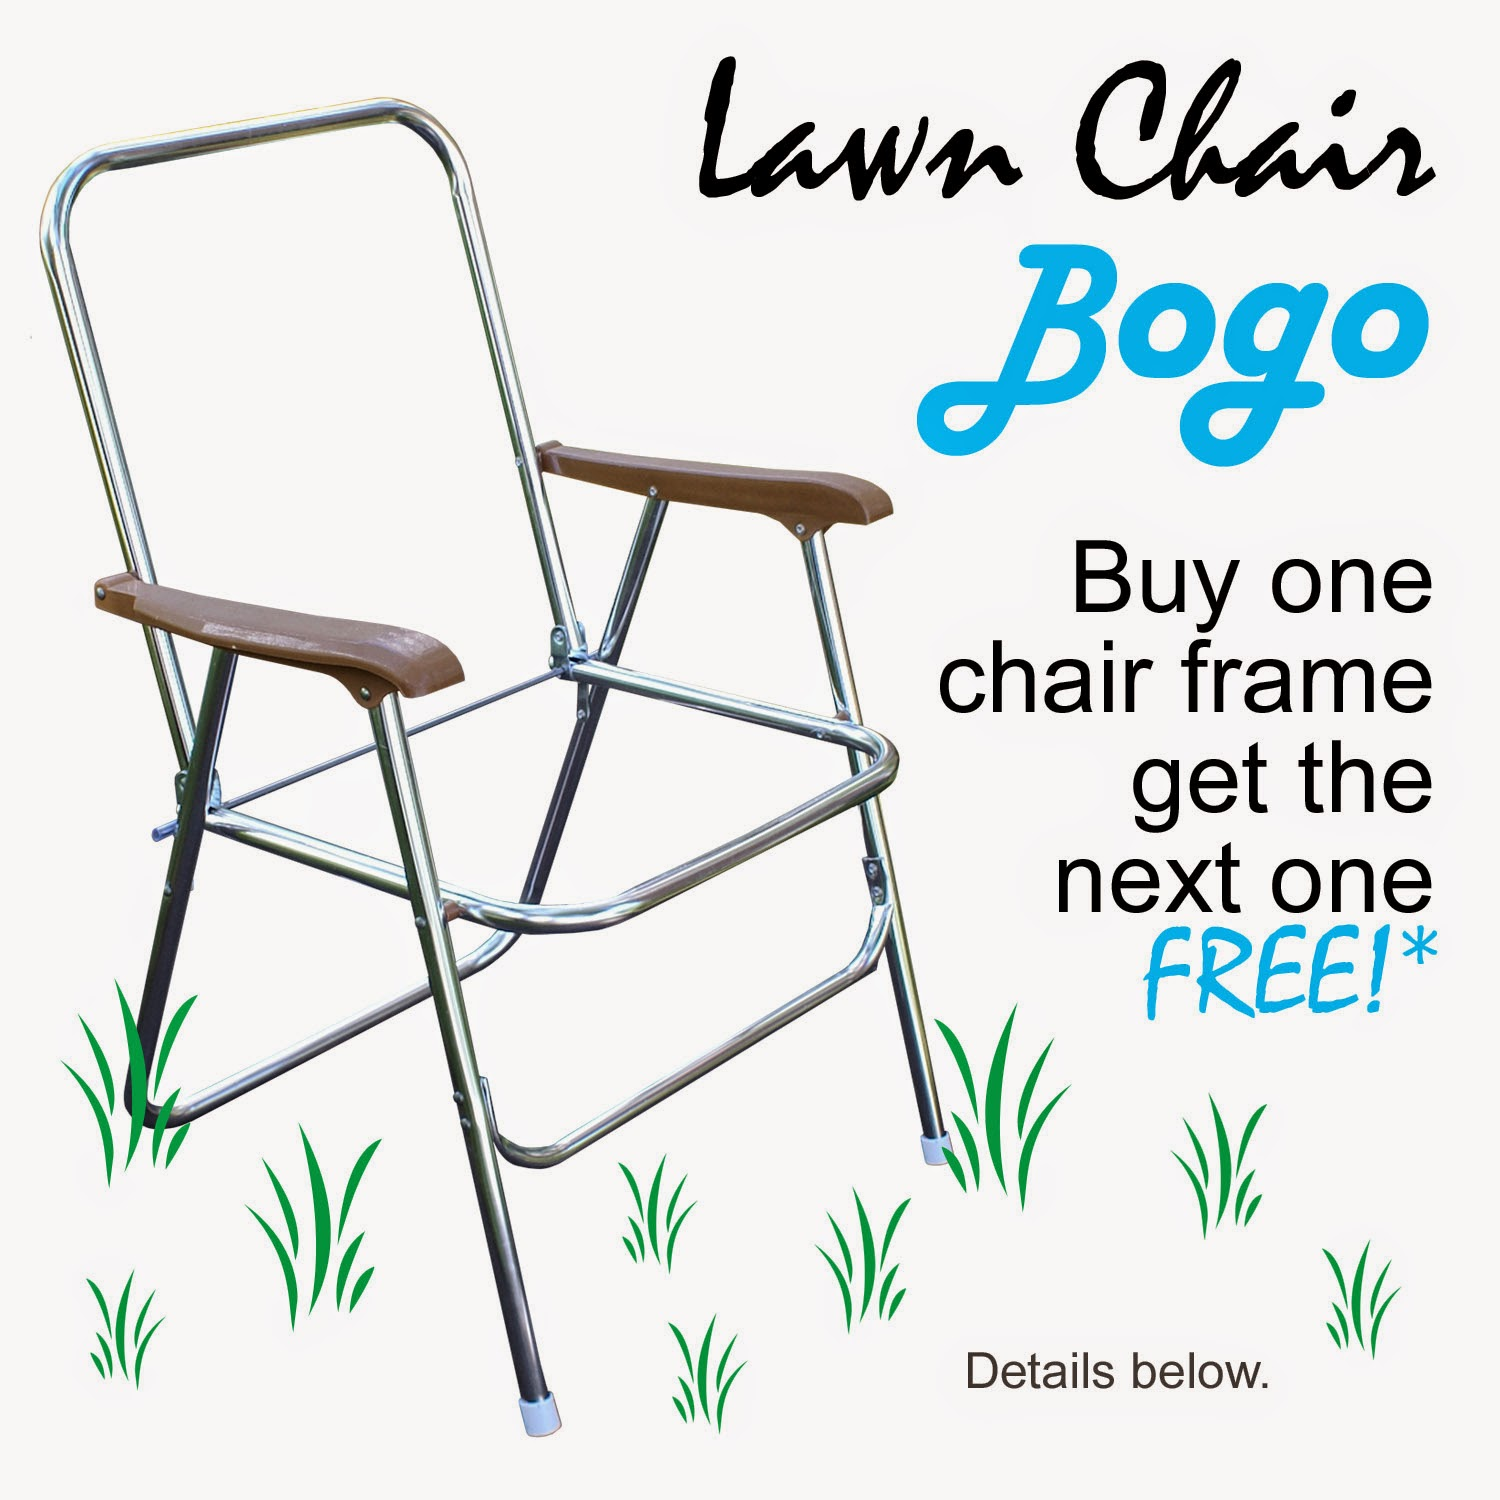 Lawn Chair BOGO Sale on MacrameSuperStore - Pepperell Braiding Co